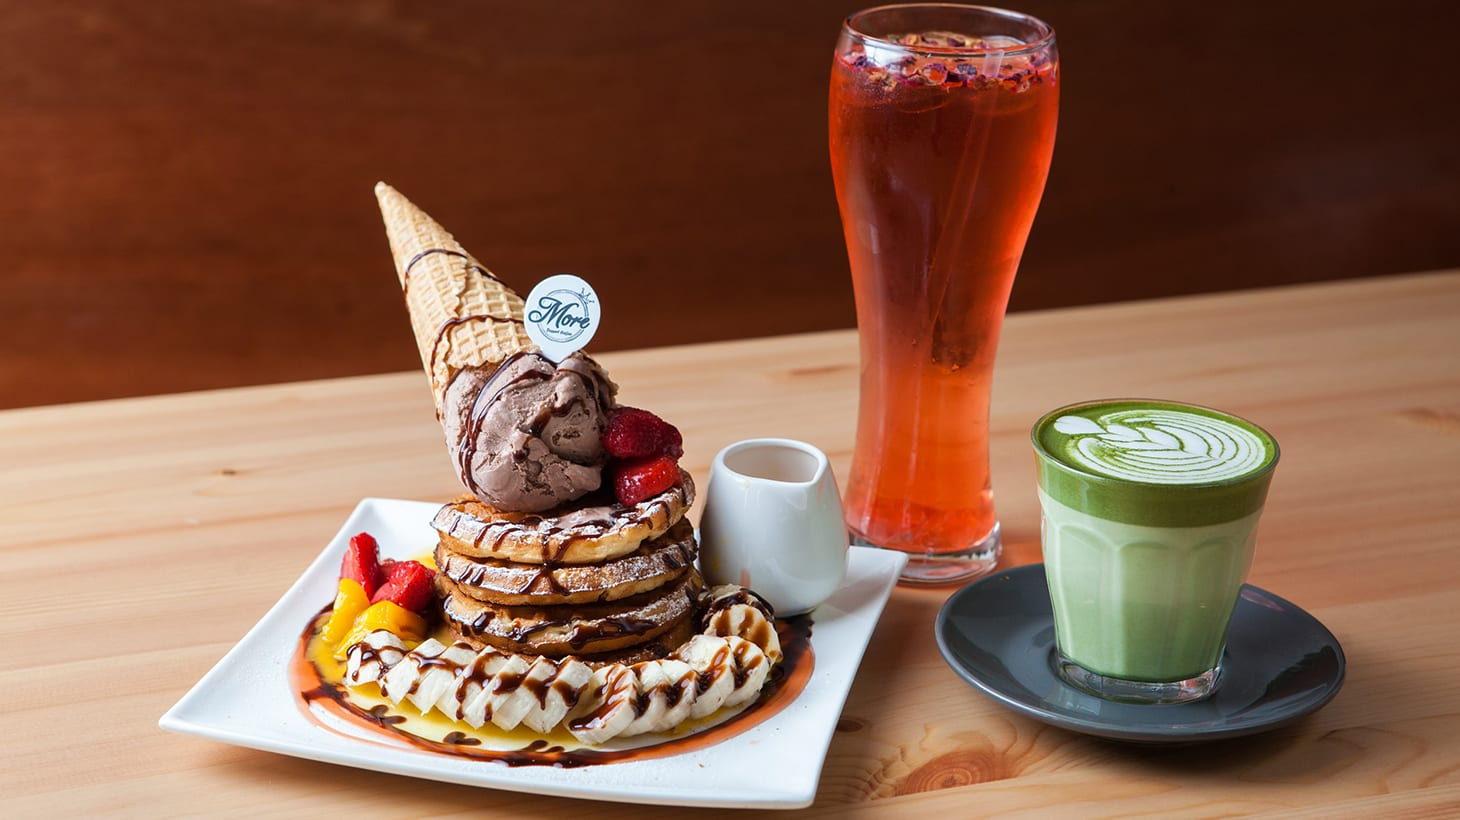 Save up to 54% on Delectable Dessert and Drinks in Sunnybank Hills! More Dessert Coffee Sunnybank Hills